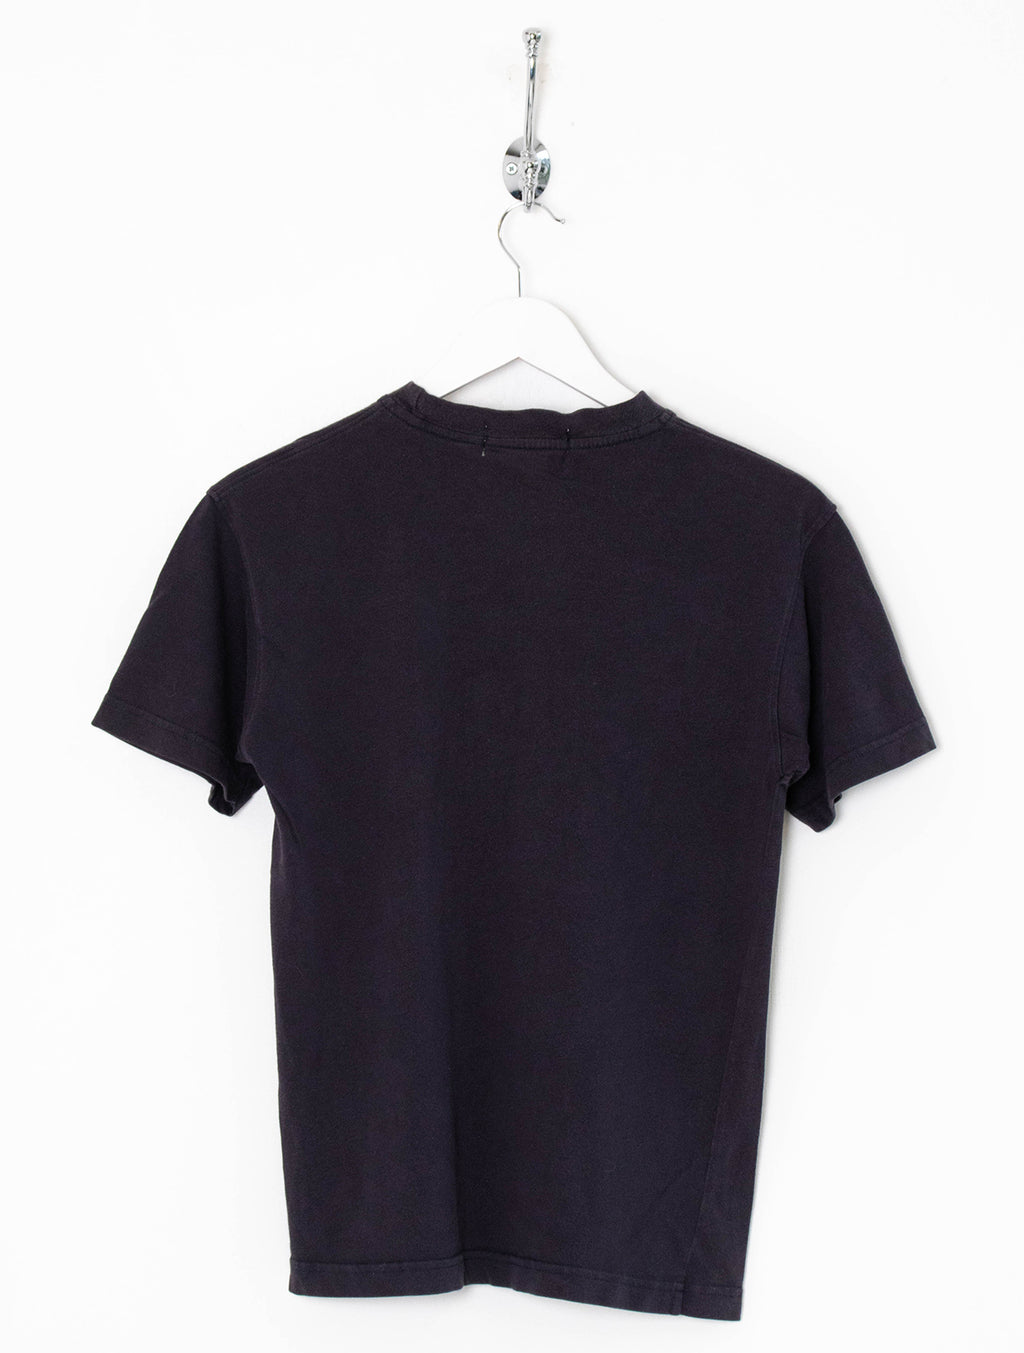 Women's Burberry T-Shirt (S)